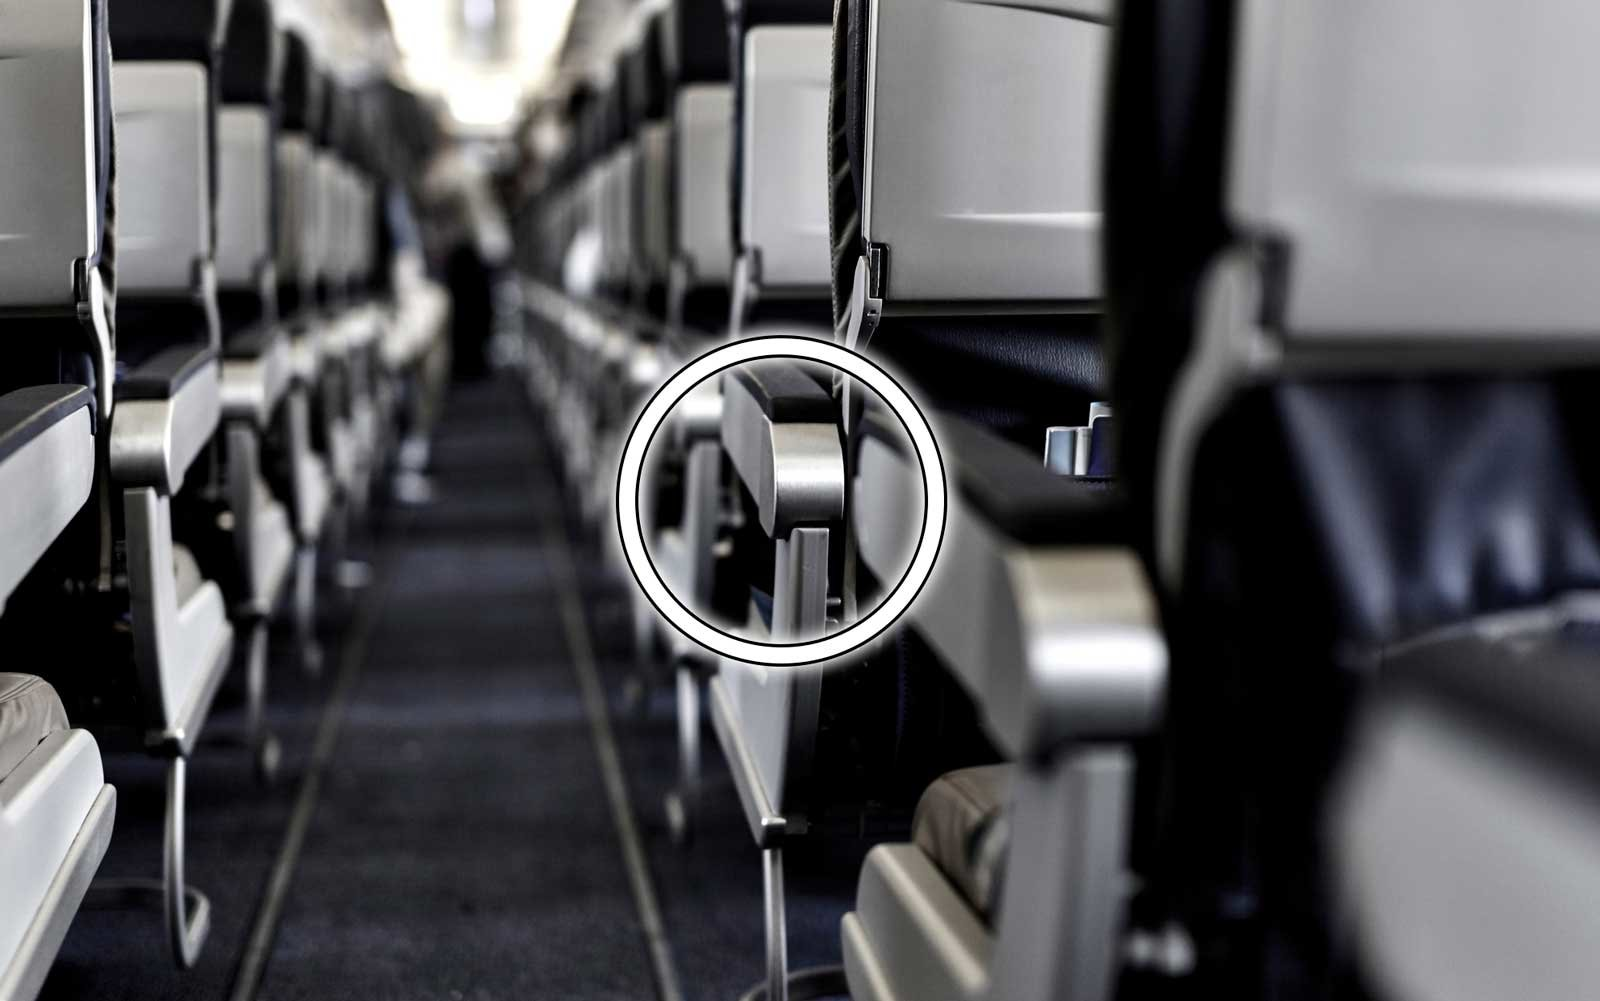 There S A Secret Button On Your Airplane Seat That Will